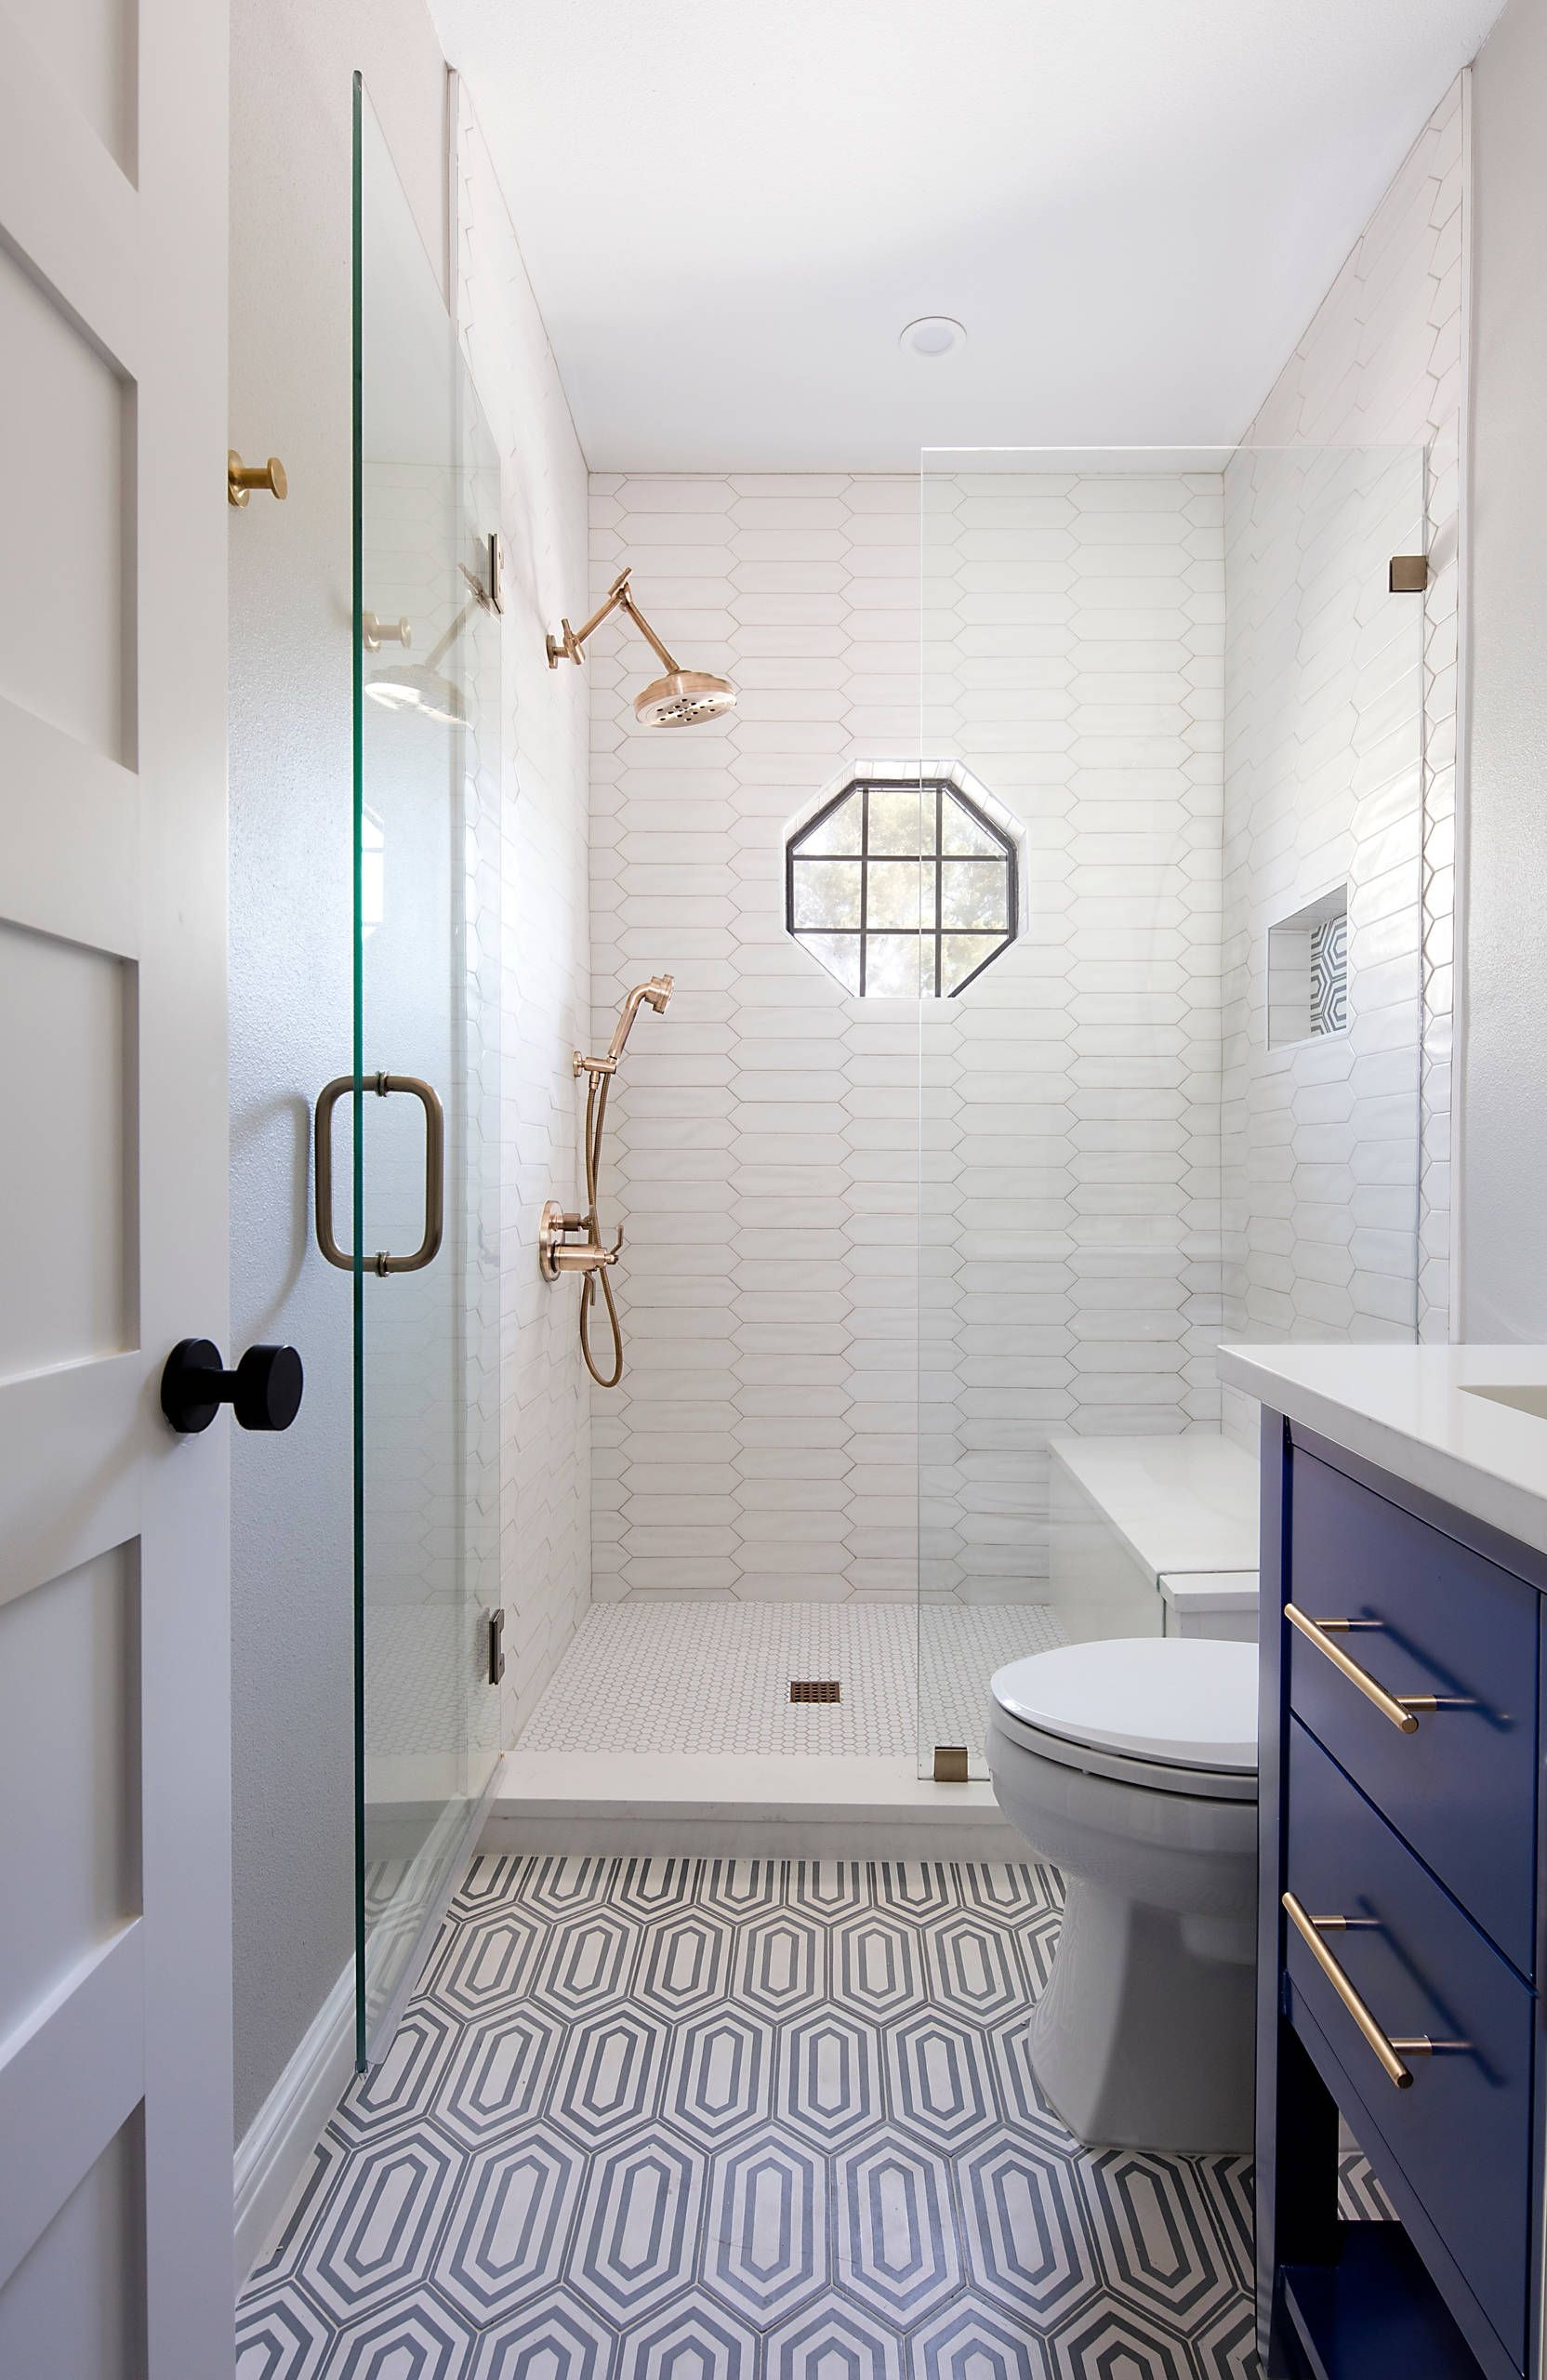 75 Beautiful Small Bathroom Pictures Ideas Houzz Throughout Small Bathroom Designs With Shower In 2020 Tiny House Bathroom Master Bathroom Design Bathrooms Remodel